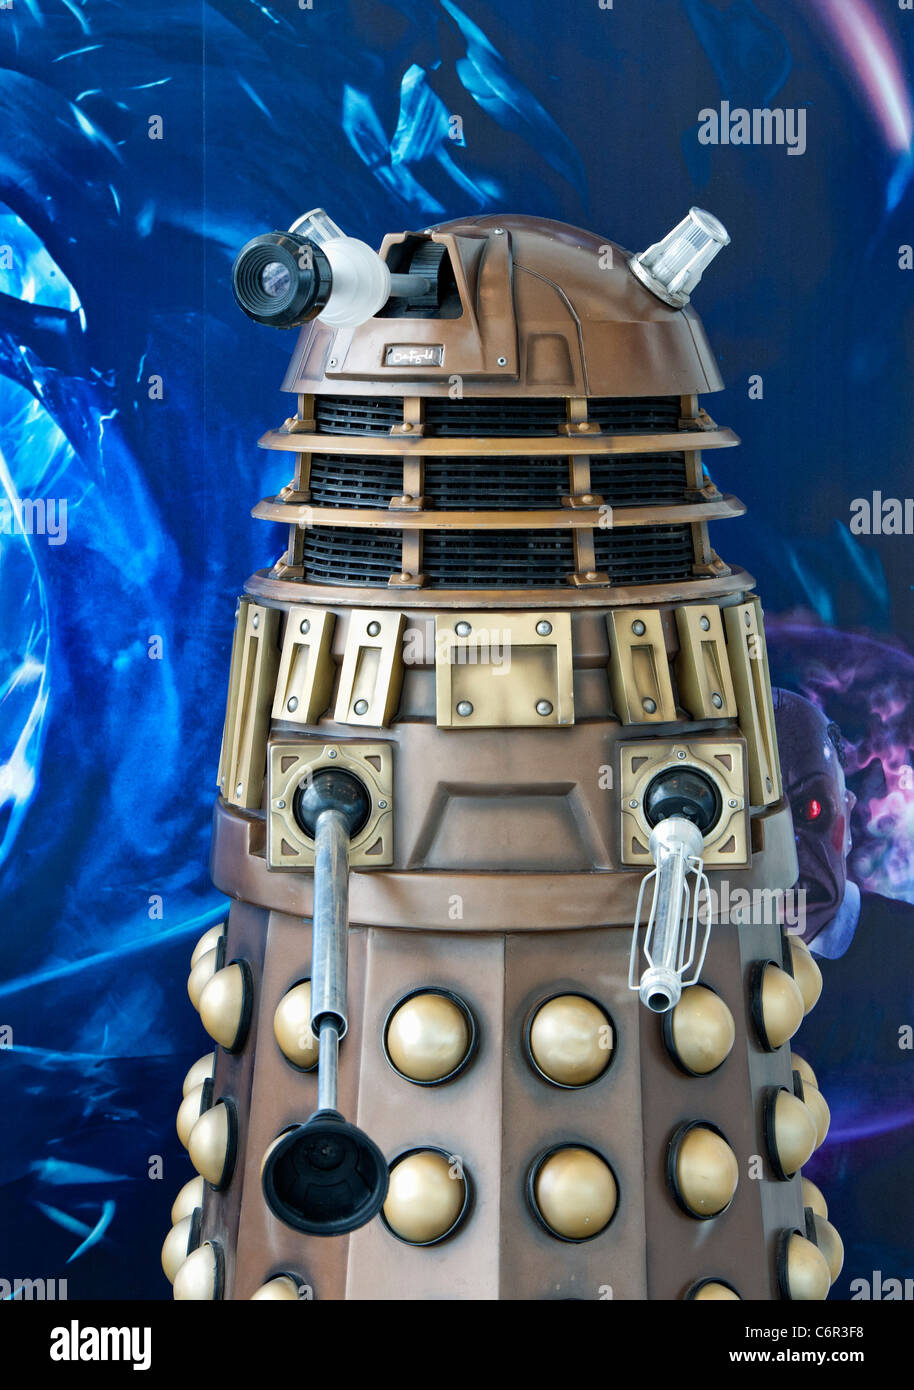 A Dalek (probably the most famous and iconic Doctor Who aliens) - Stock Image